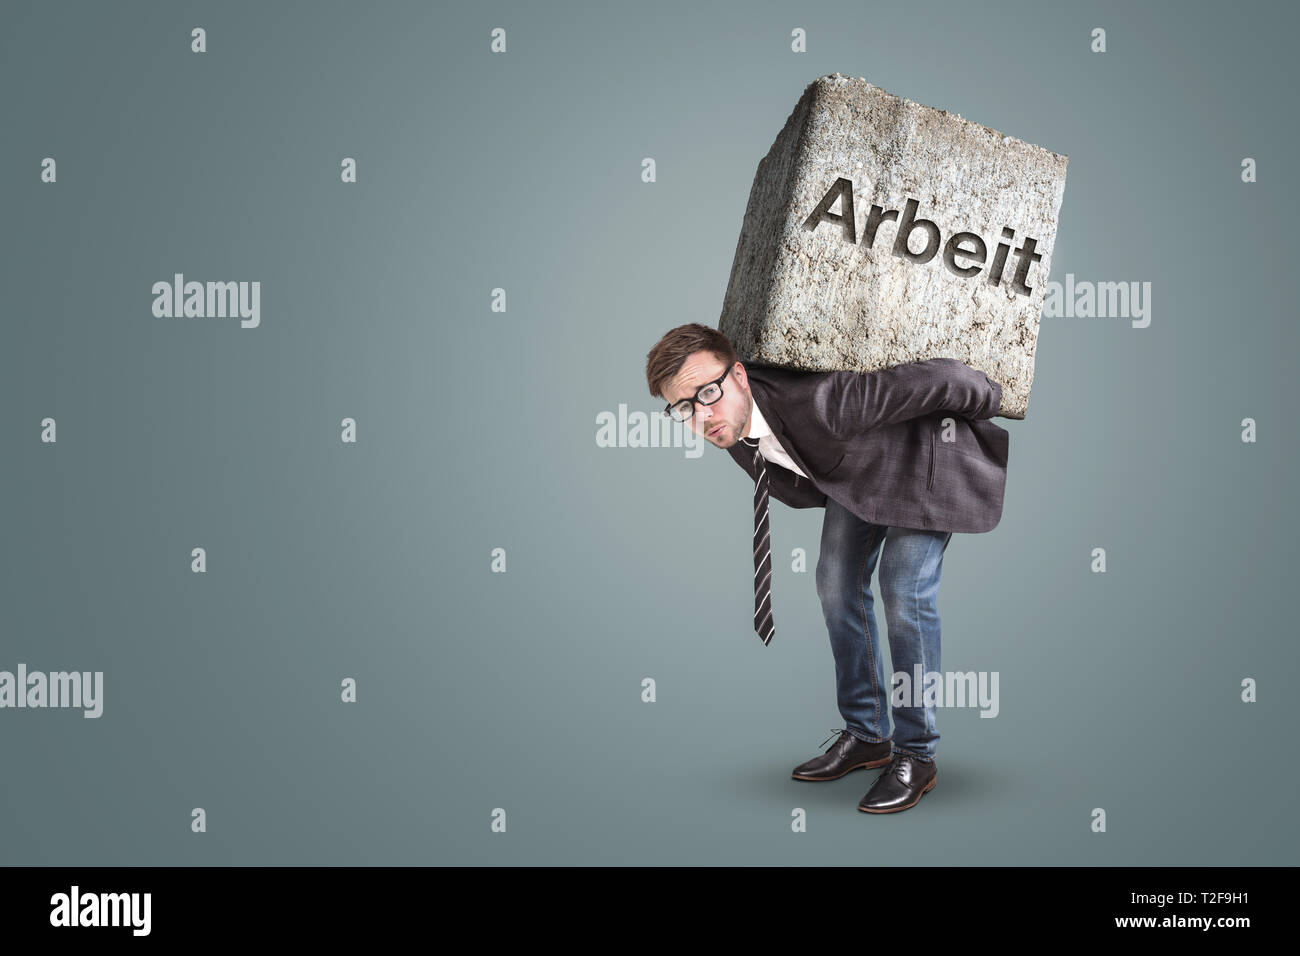 "Concept of an entrepreneur bending under a heavy workload. Translation on stone: ""Work"" - Stock Image"